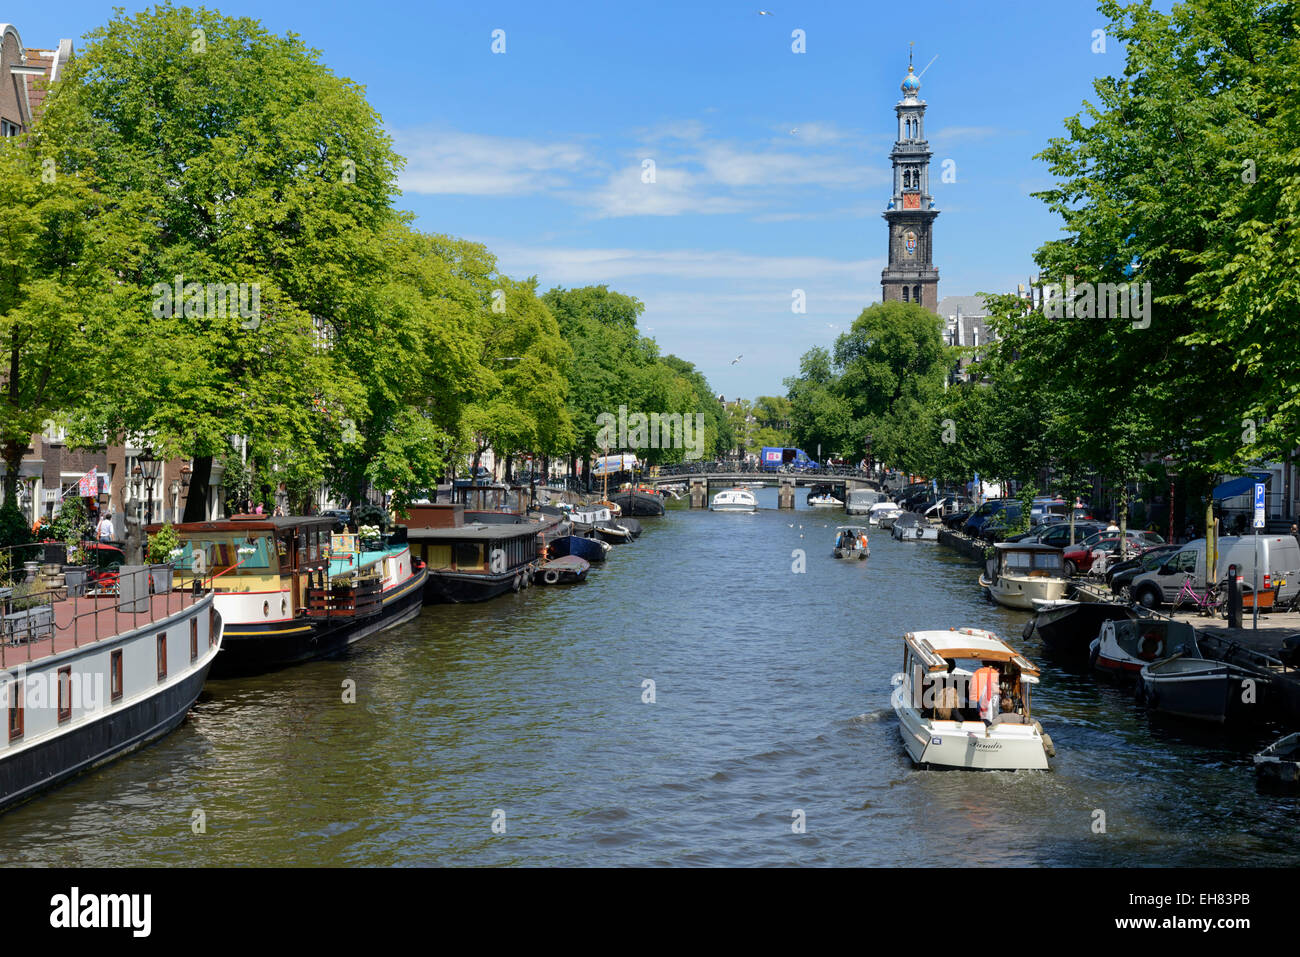 View along Prinsengracht canal, looking towards Westerkerk church, Amsterdam, North Holland, Netherlands, Europe - Stock Image